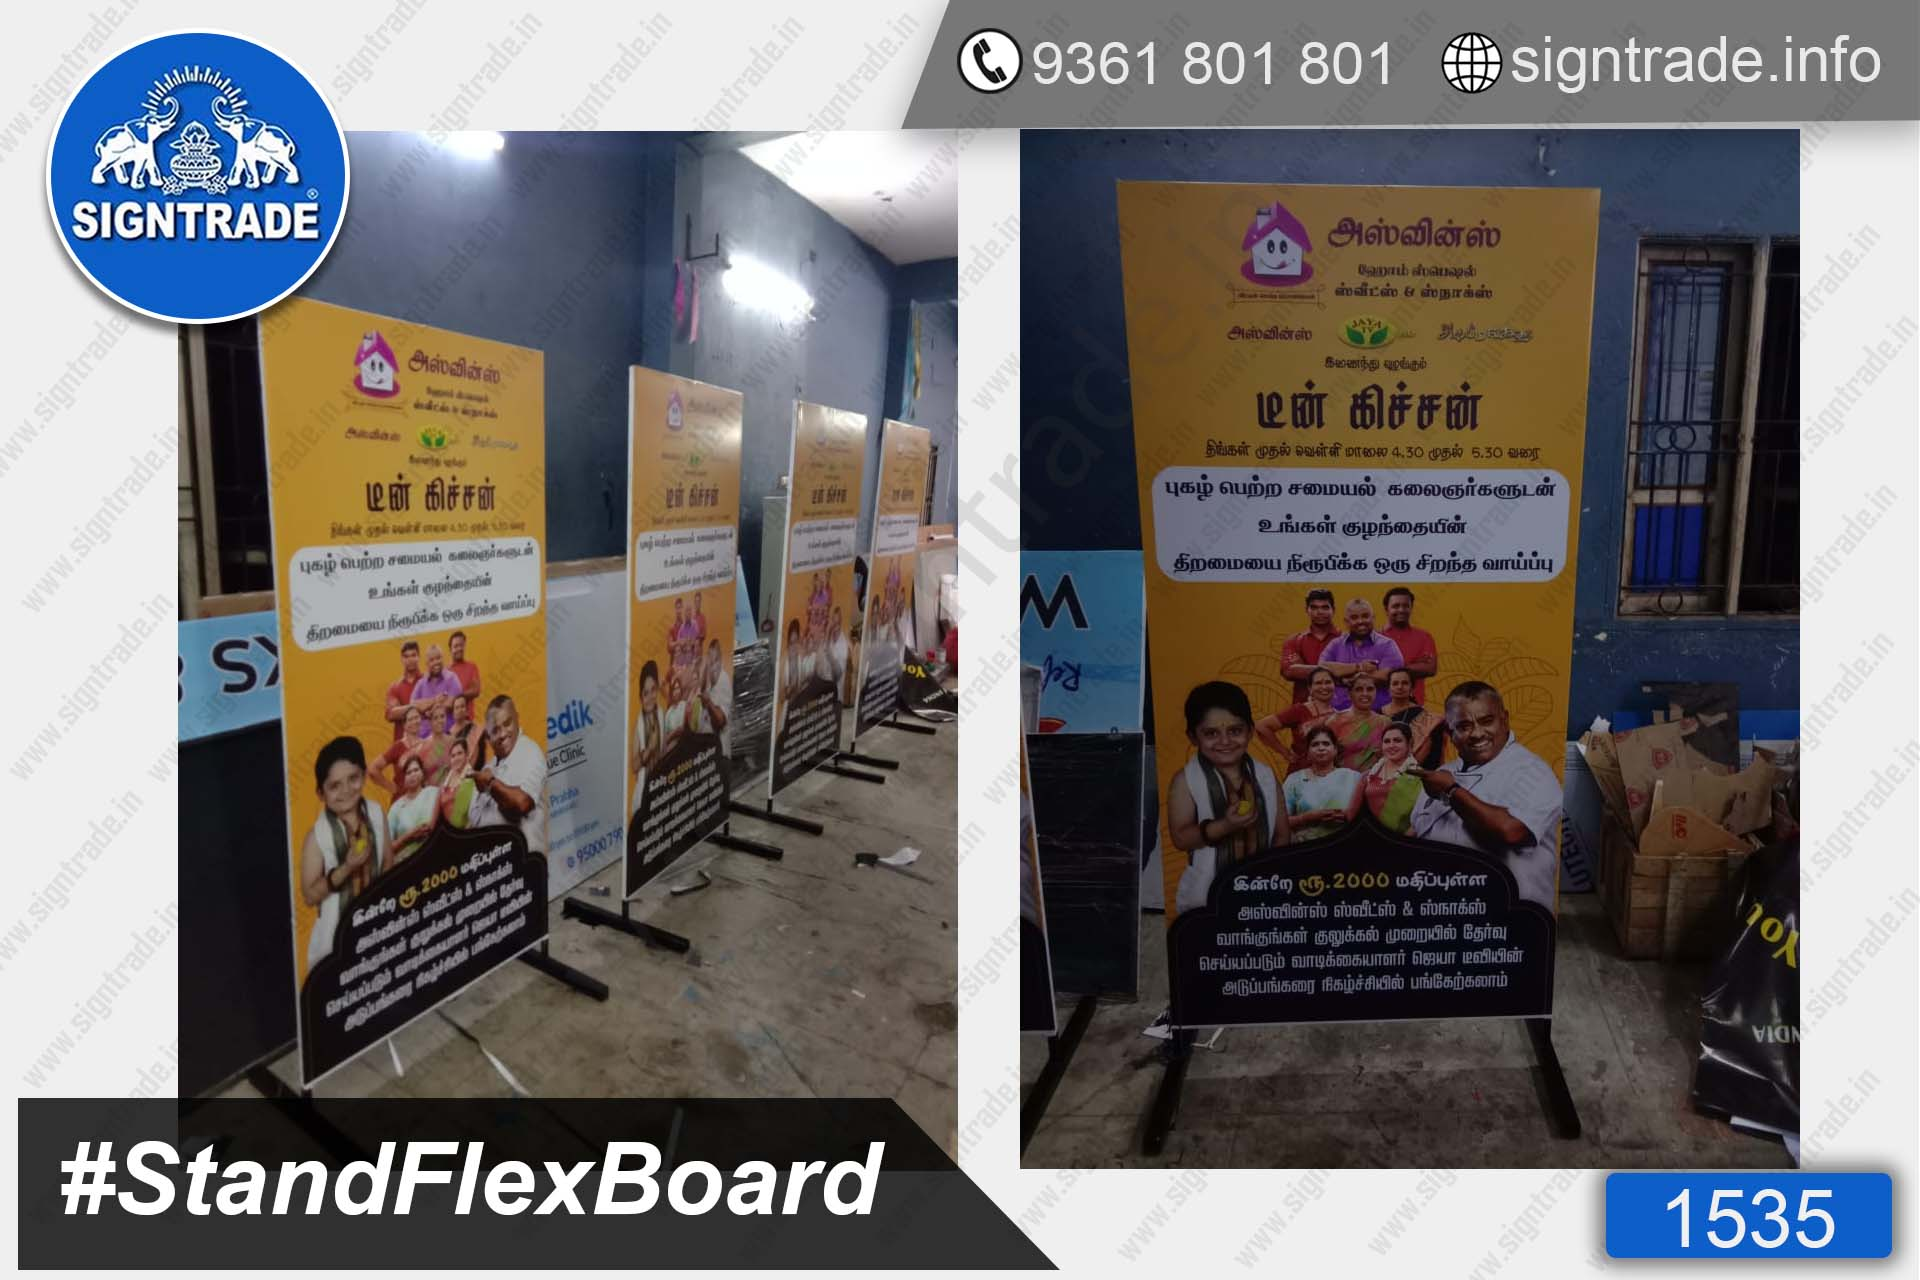 Aswins Home Special Sweets & Snacks, Chennai - SIGNTRADE - Stand Up Flex Board - Digital Printing Services in Chennai